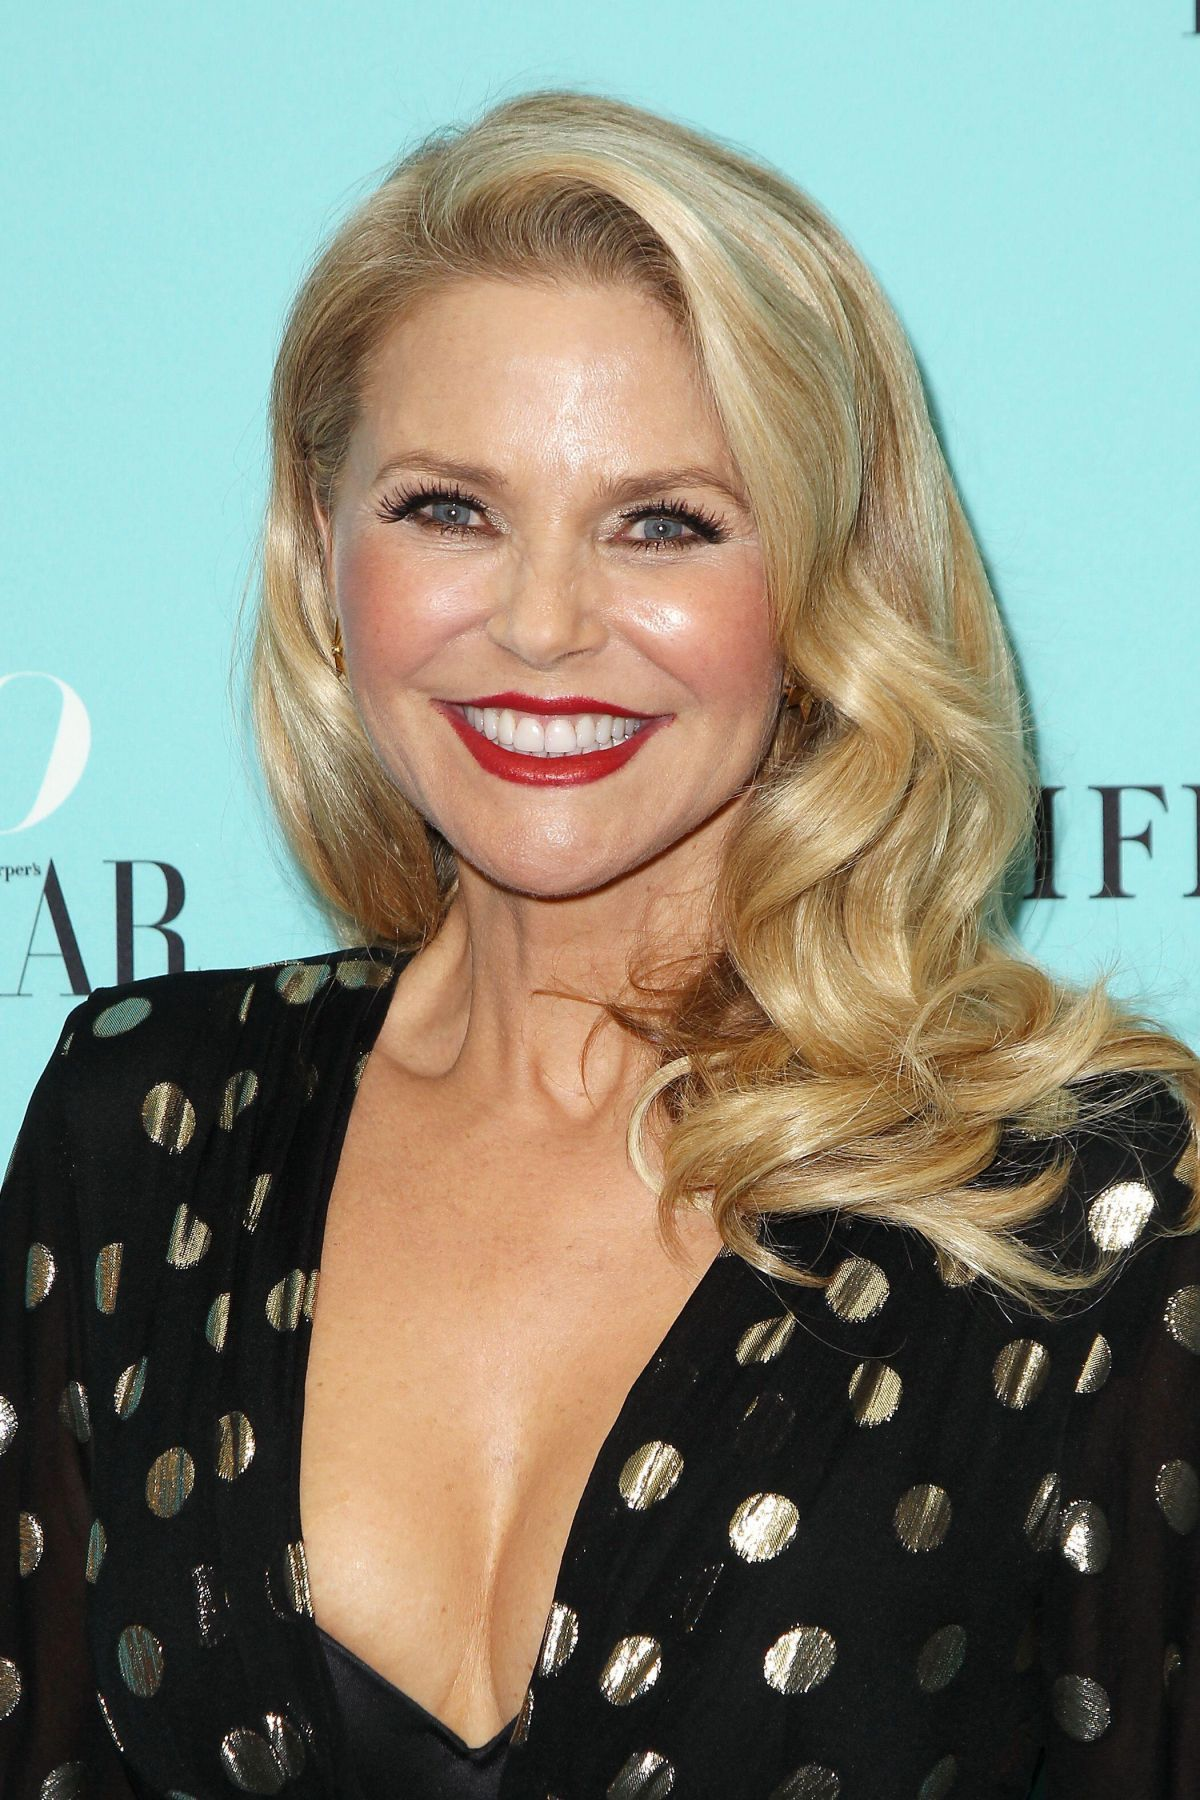 Christie Brinkley At 150 Years of Women, Fashion and New York Celebration in NY   christie-brinkley-at-150-years-of-women-fashion-and-new-york-celebration-in-ny_2